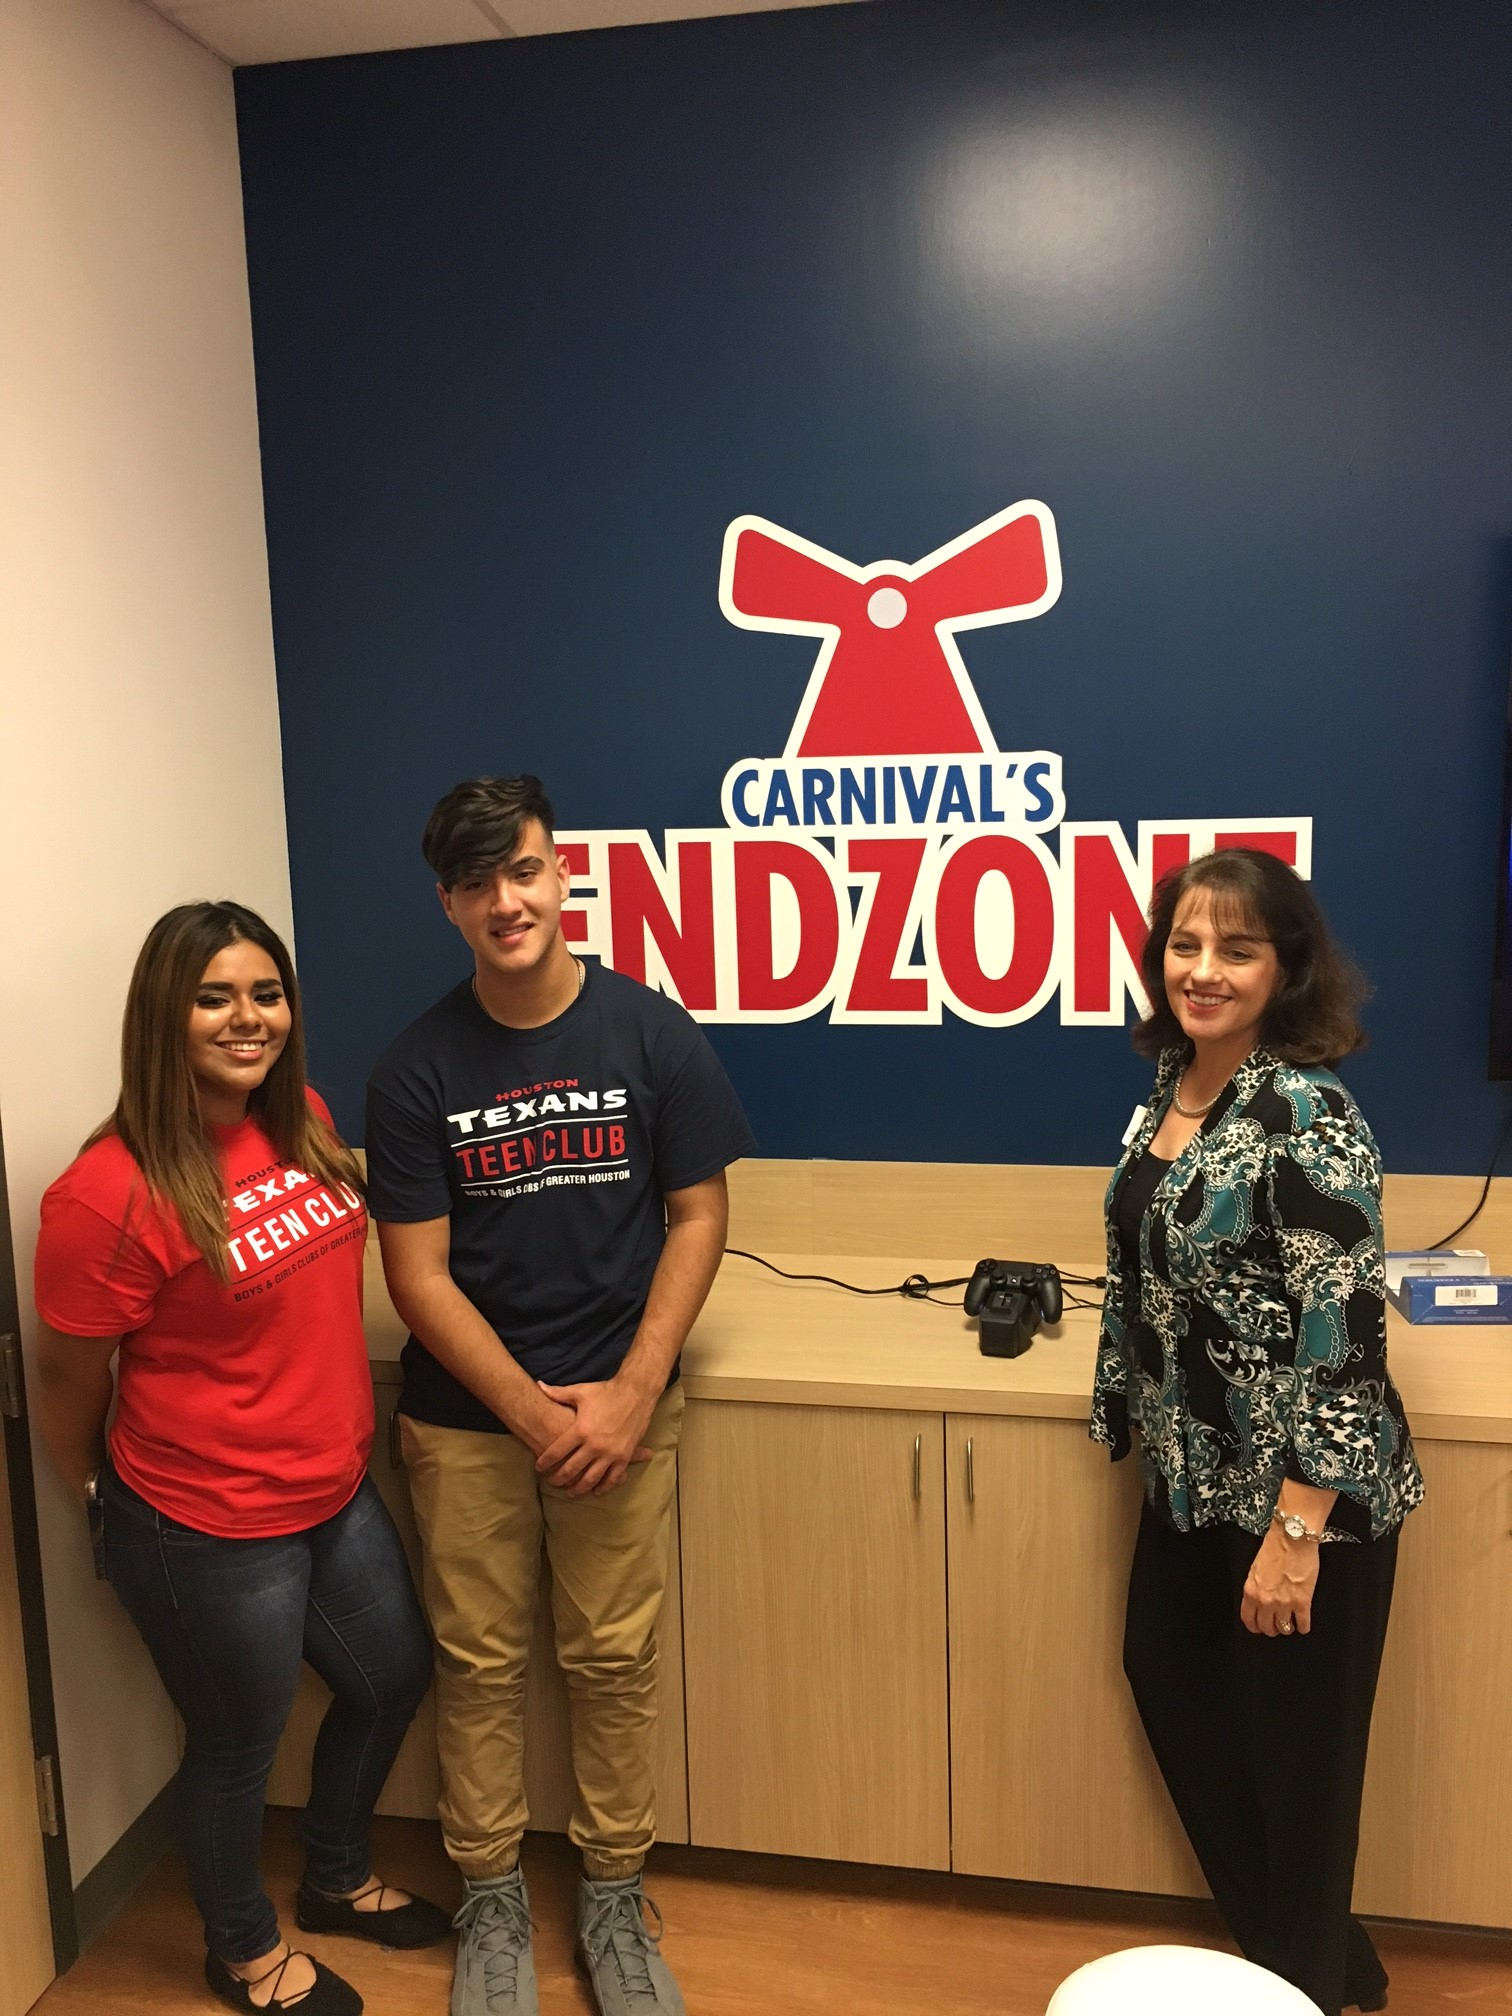 'Carnival's Endzone' Game Room Opens at the New Houston Texans Teen Club  In Partnership with the Boys & Girls Club of Greater Houston